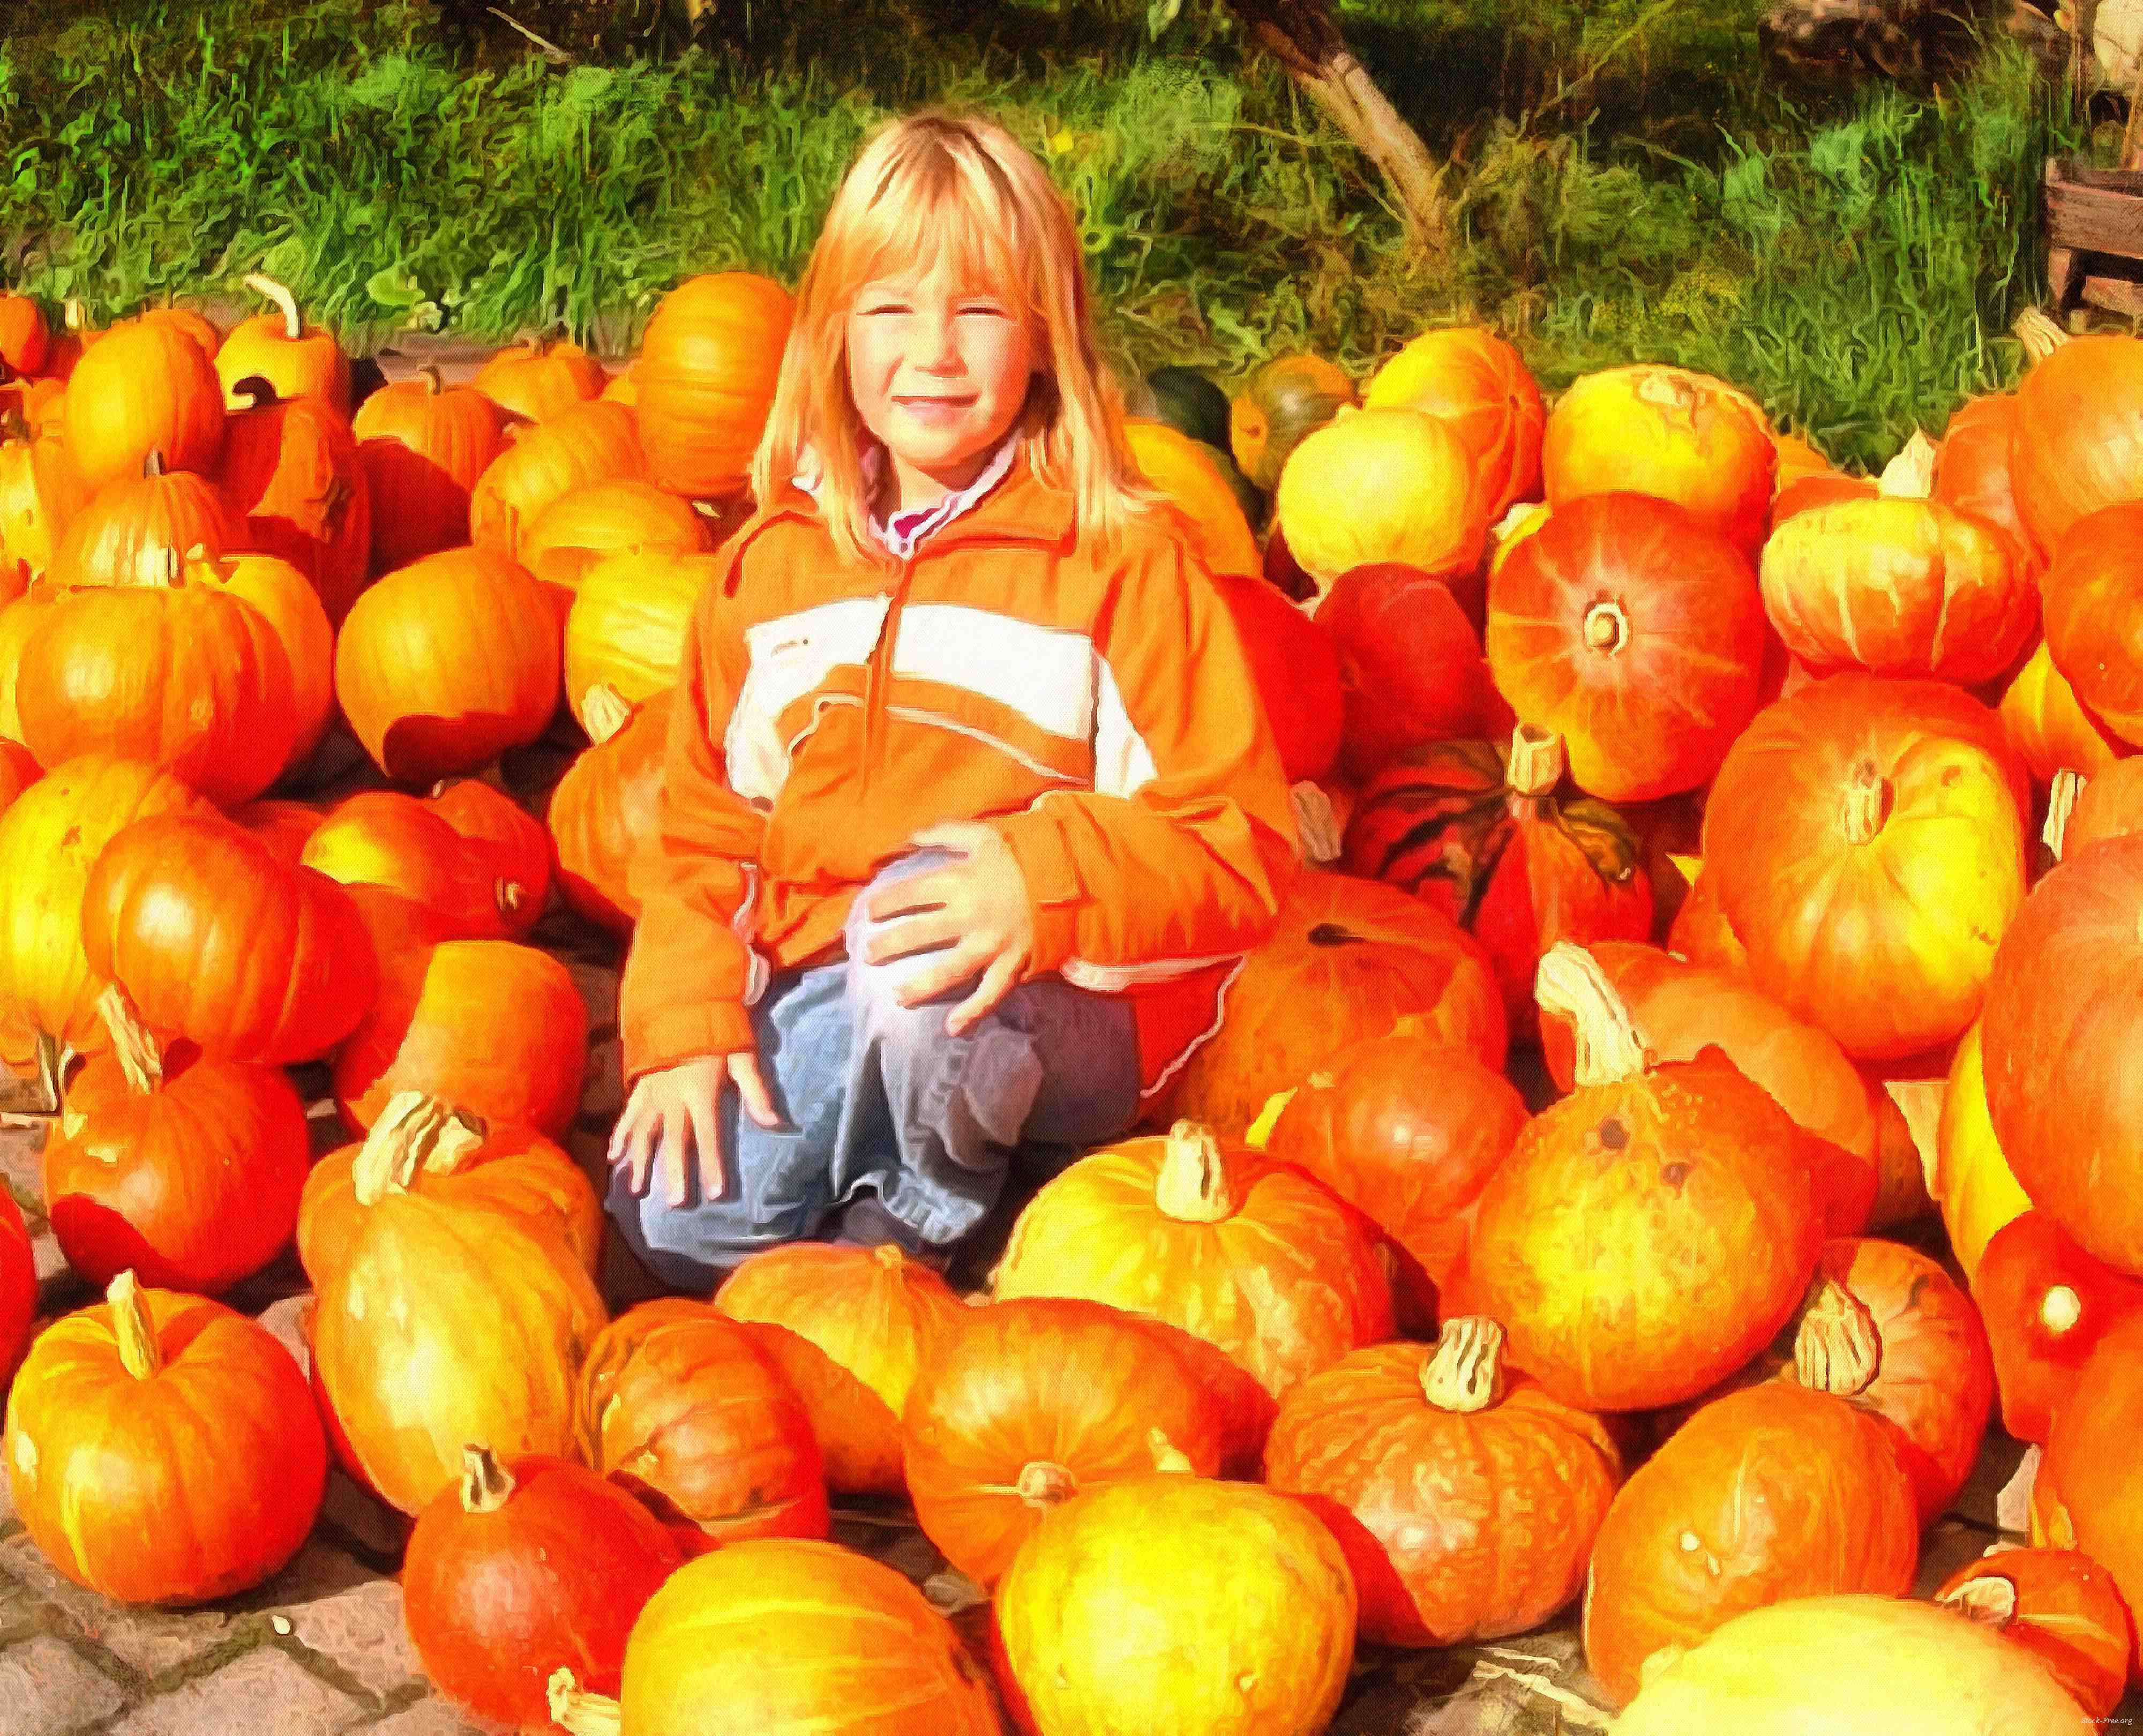 girl, kids, pumpkin, holiday, flame, candle, smile, candle, horror - halloween, holiday, free images, public domain images, free stock images, download images, free pictures<br>